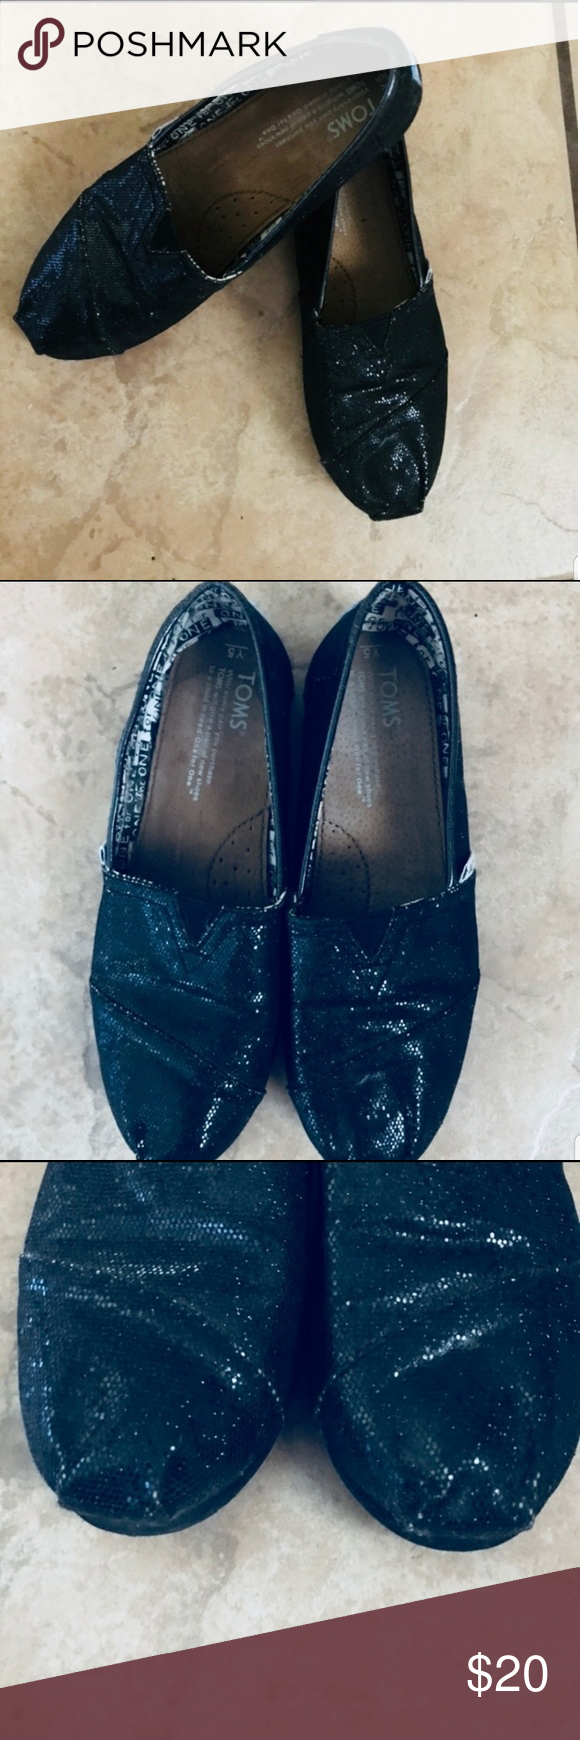 Toms shoes, Black toms, Youth